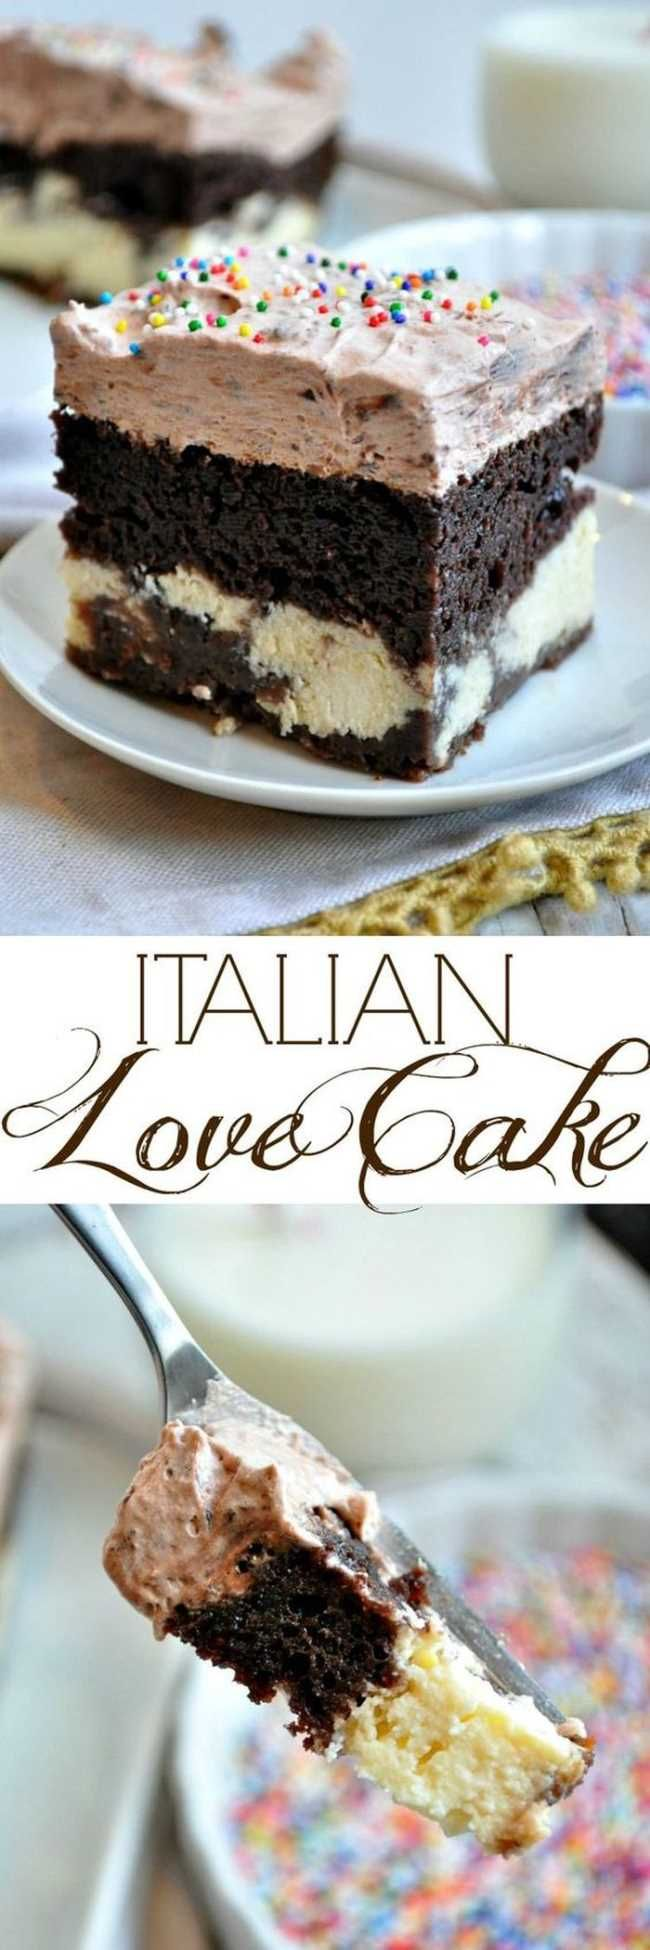 2110 best Recipes (Cakes/Cupcakes) images on Pinterest | Desserts ...